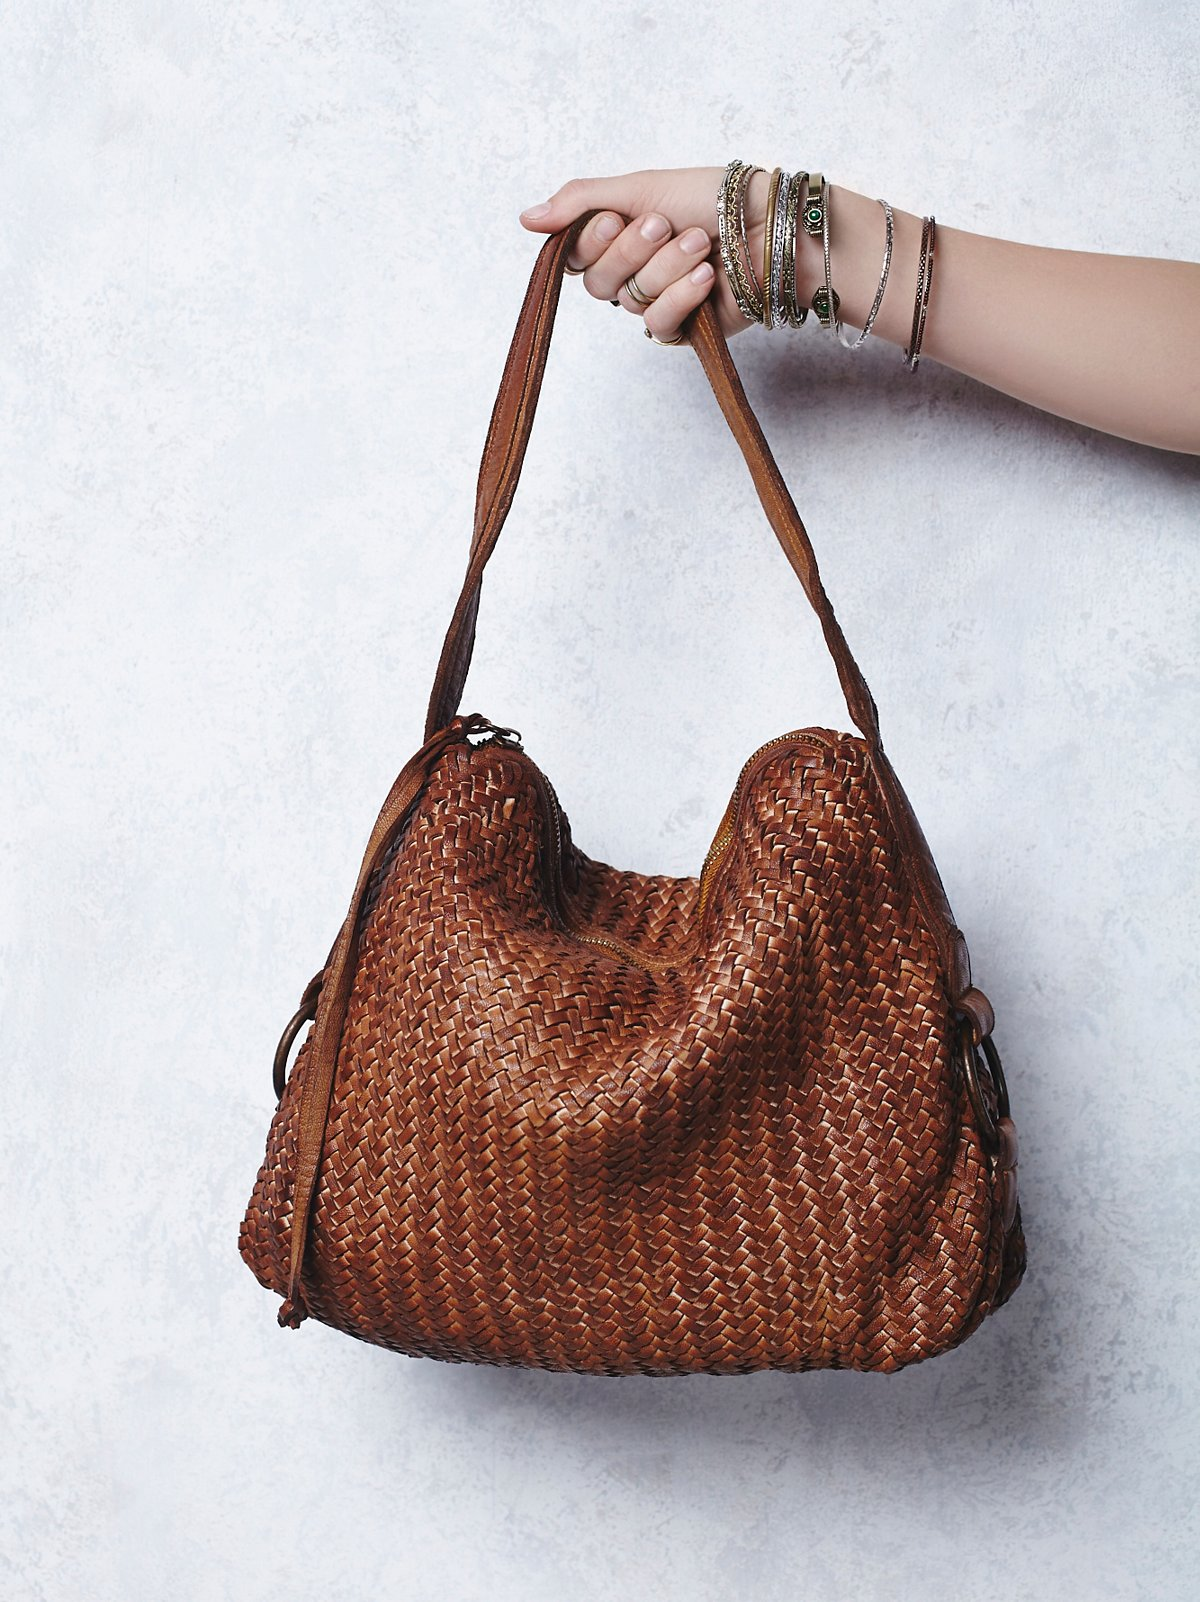 Woven Wishes Leather Tote